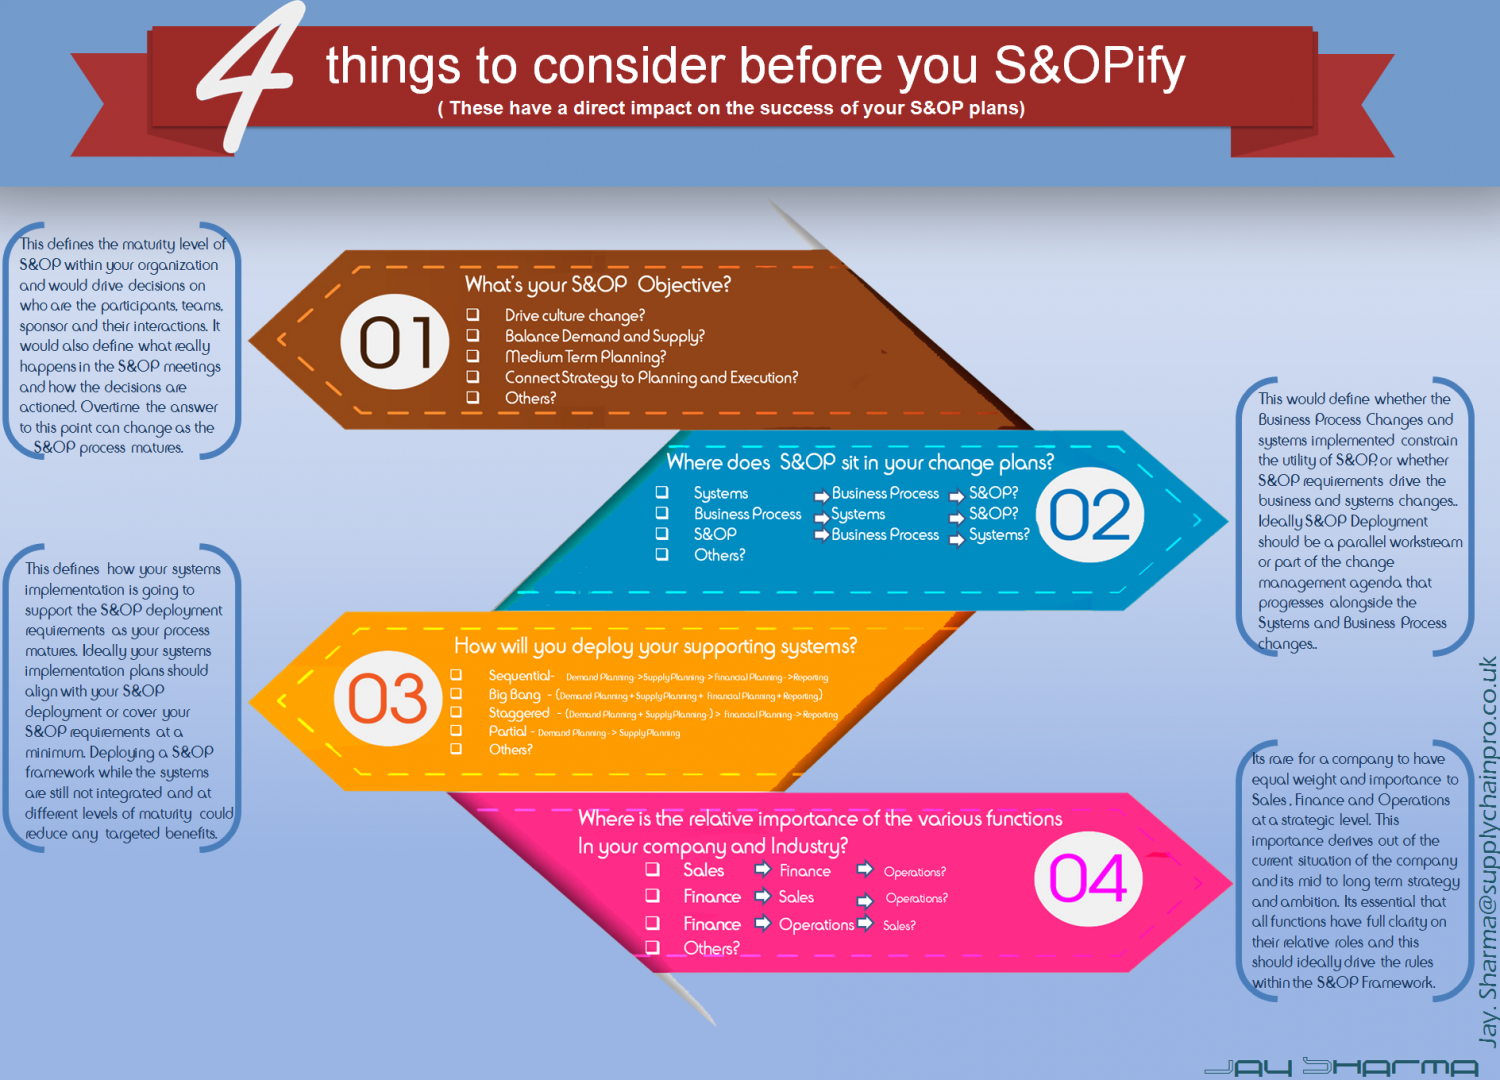 4 Things to consider before you S&OPify Infographic